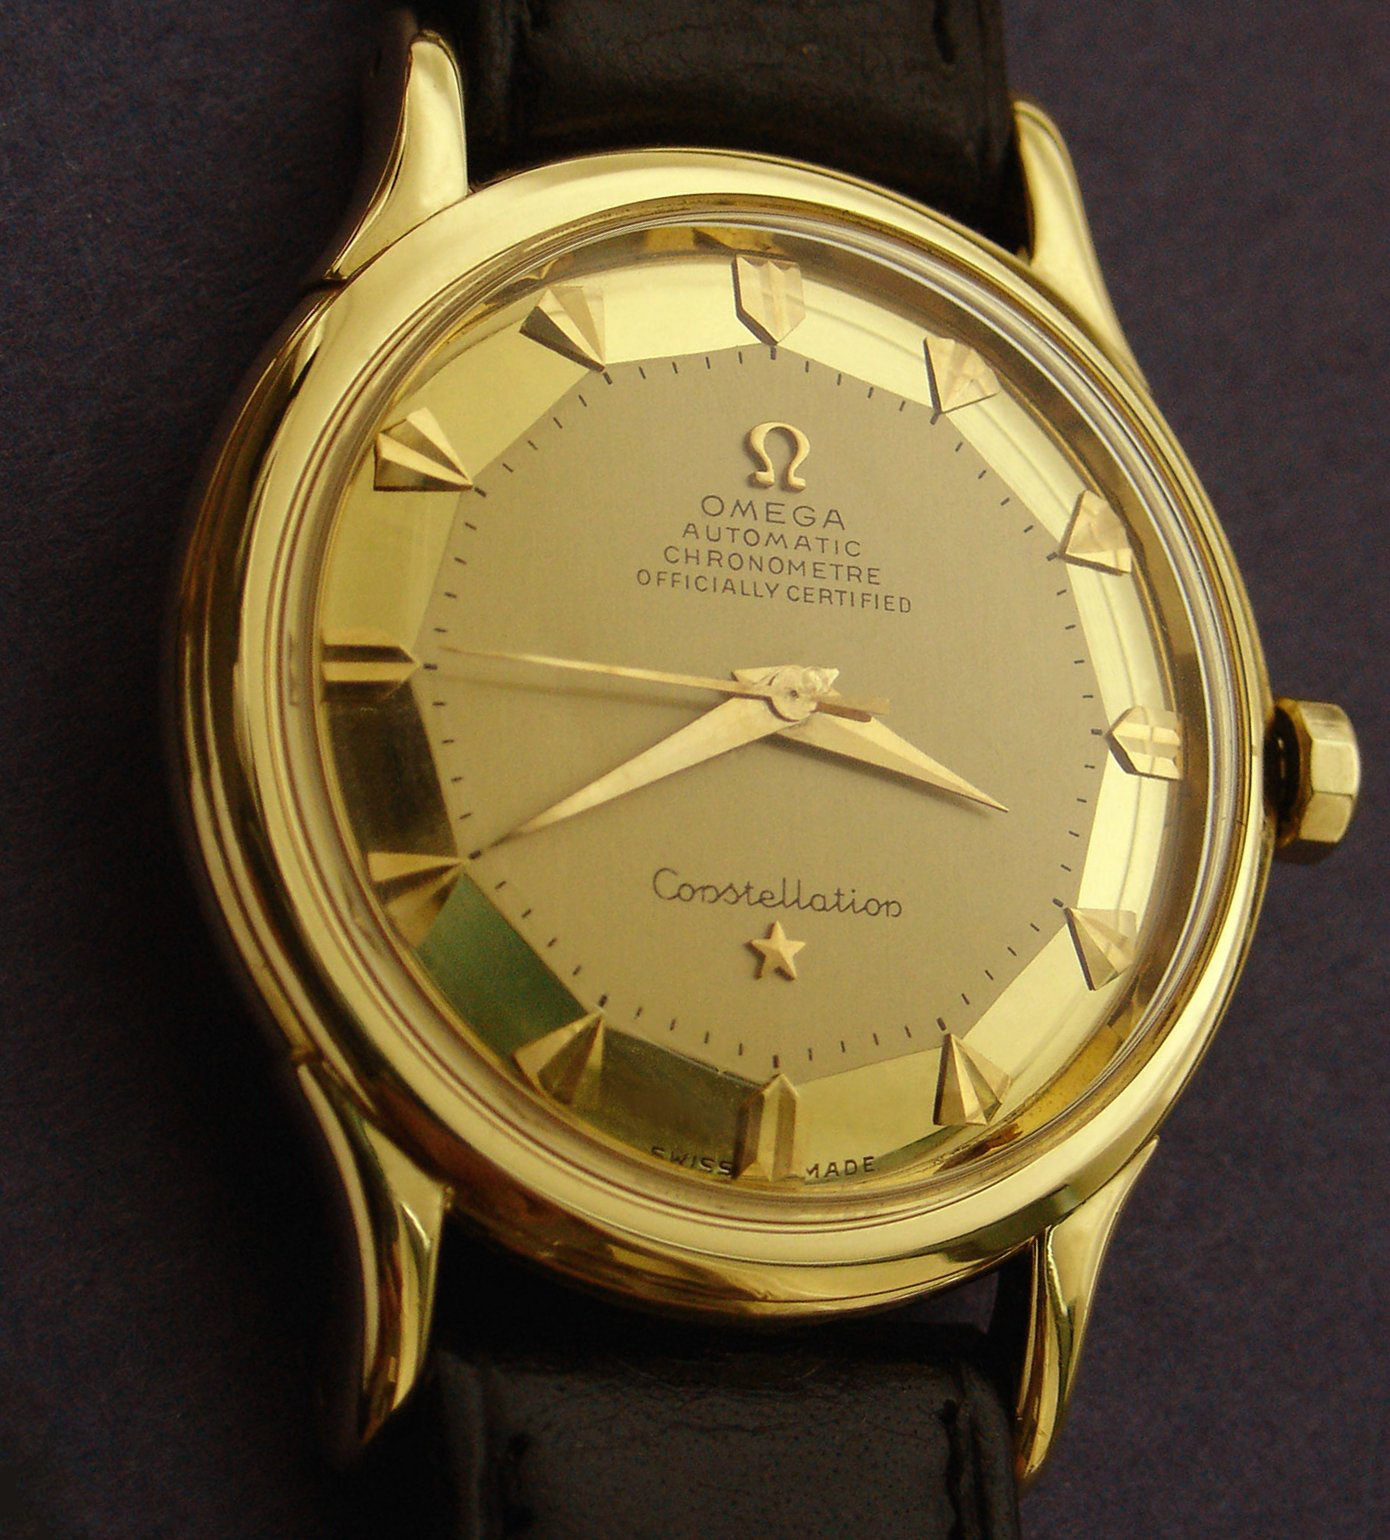 Omega Constellation Model 2699 - Star of the Month!